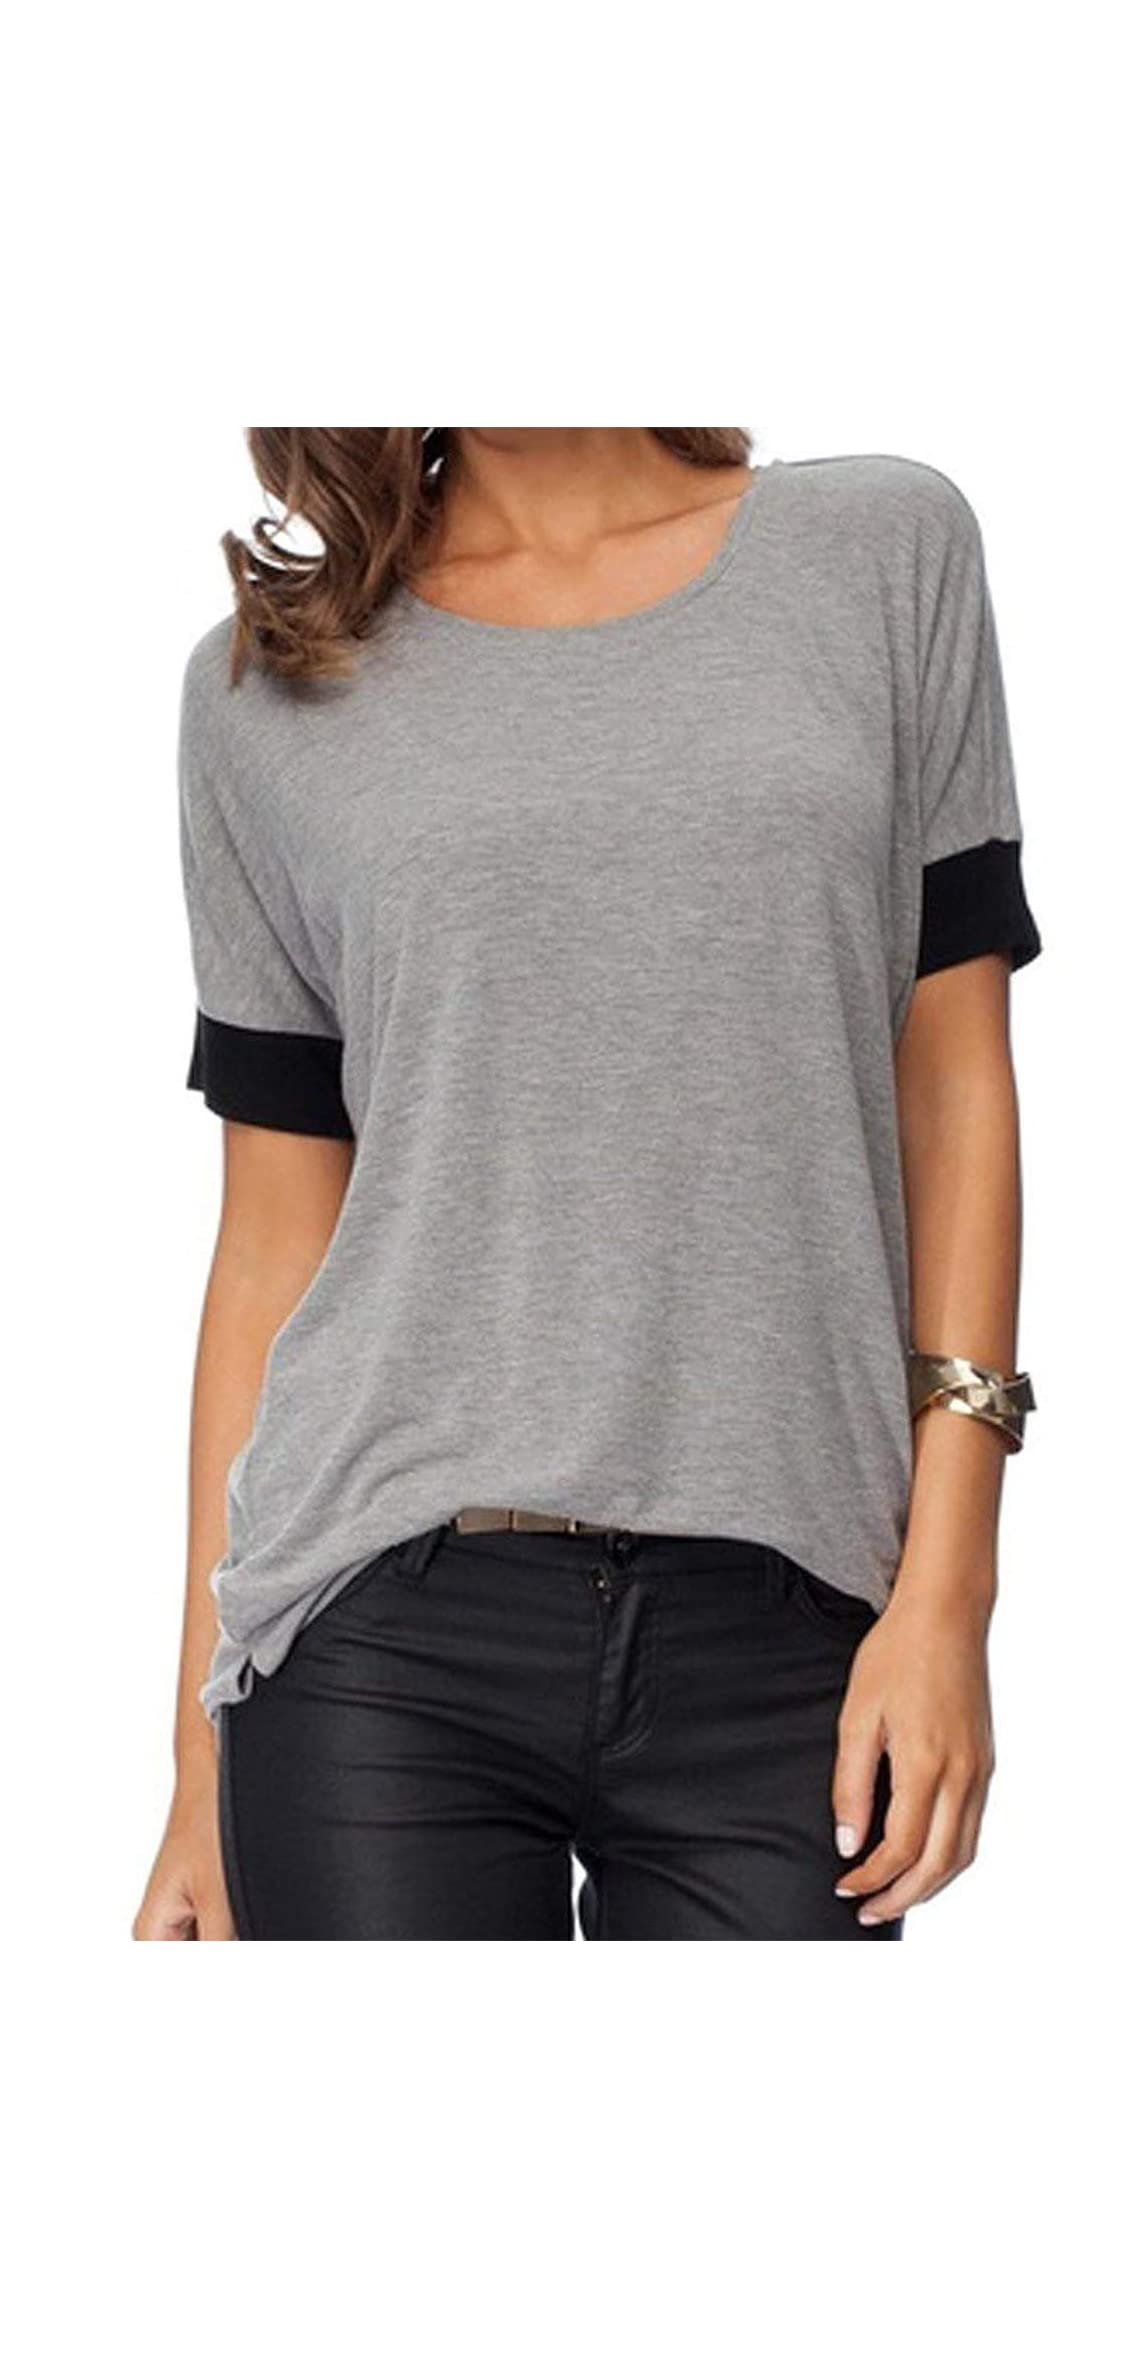 Women's Casual Round Neck Loose Fit Short Sleeve